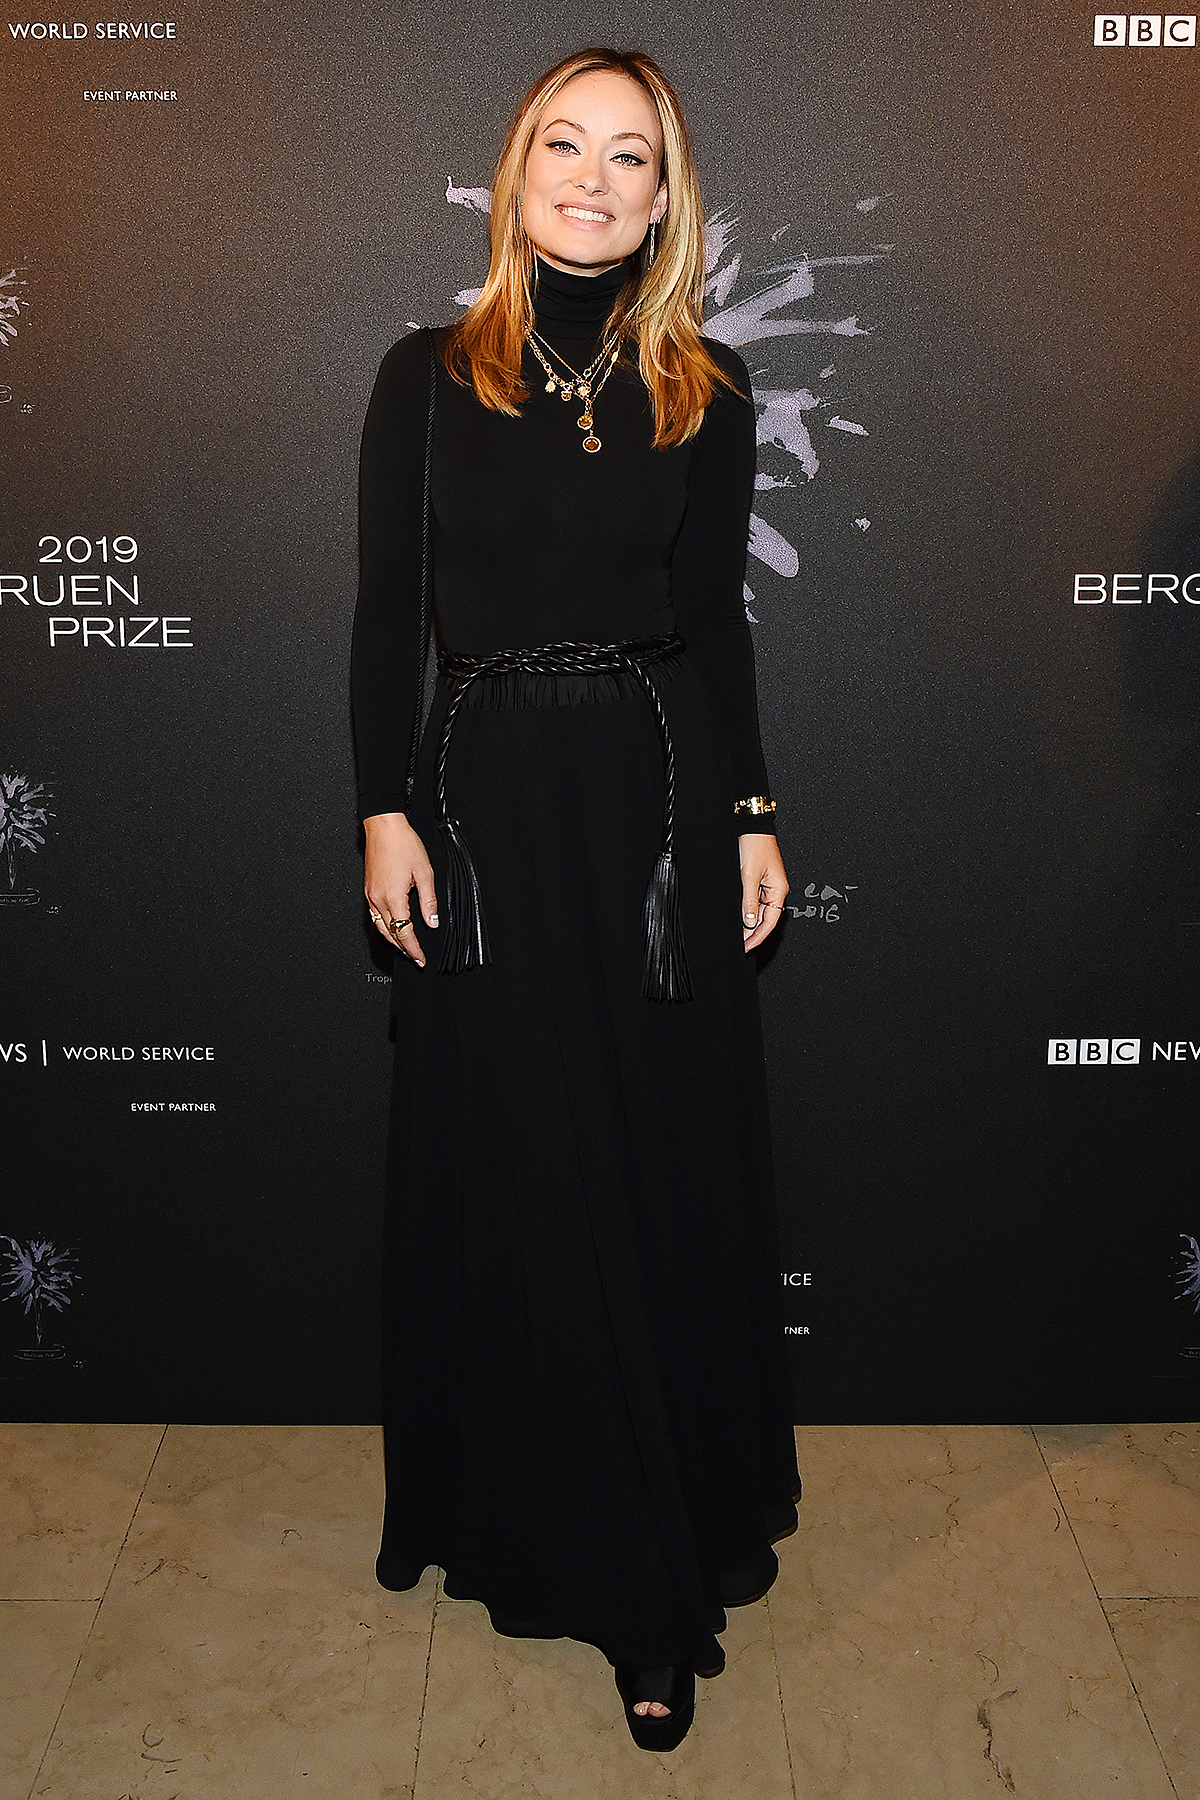 NEW YORK, NEW YORK - DECEMBER 16: Olivia Wilde attends the Fourth Annual Berggruen Prize Gala celebrating 2019 Laureate Supreme Court Justice Ruth Bader Ginsburg in New York City on December 16, 2019 in New York City.